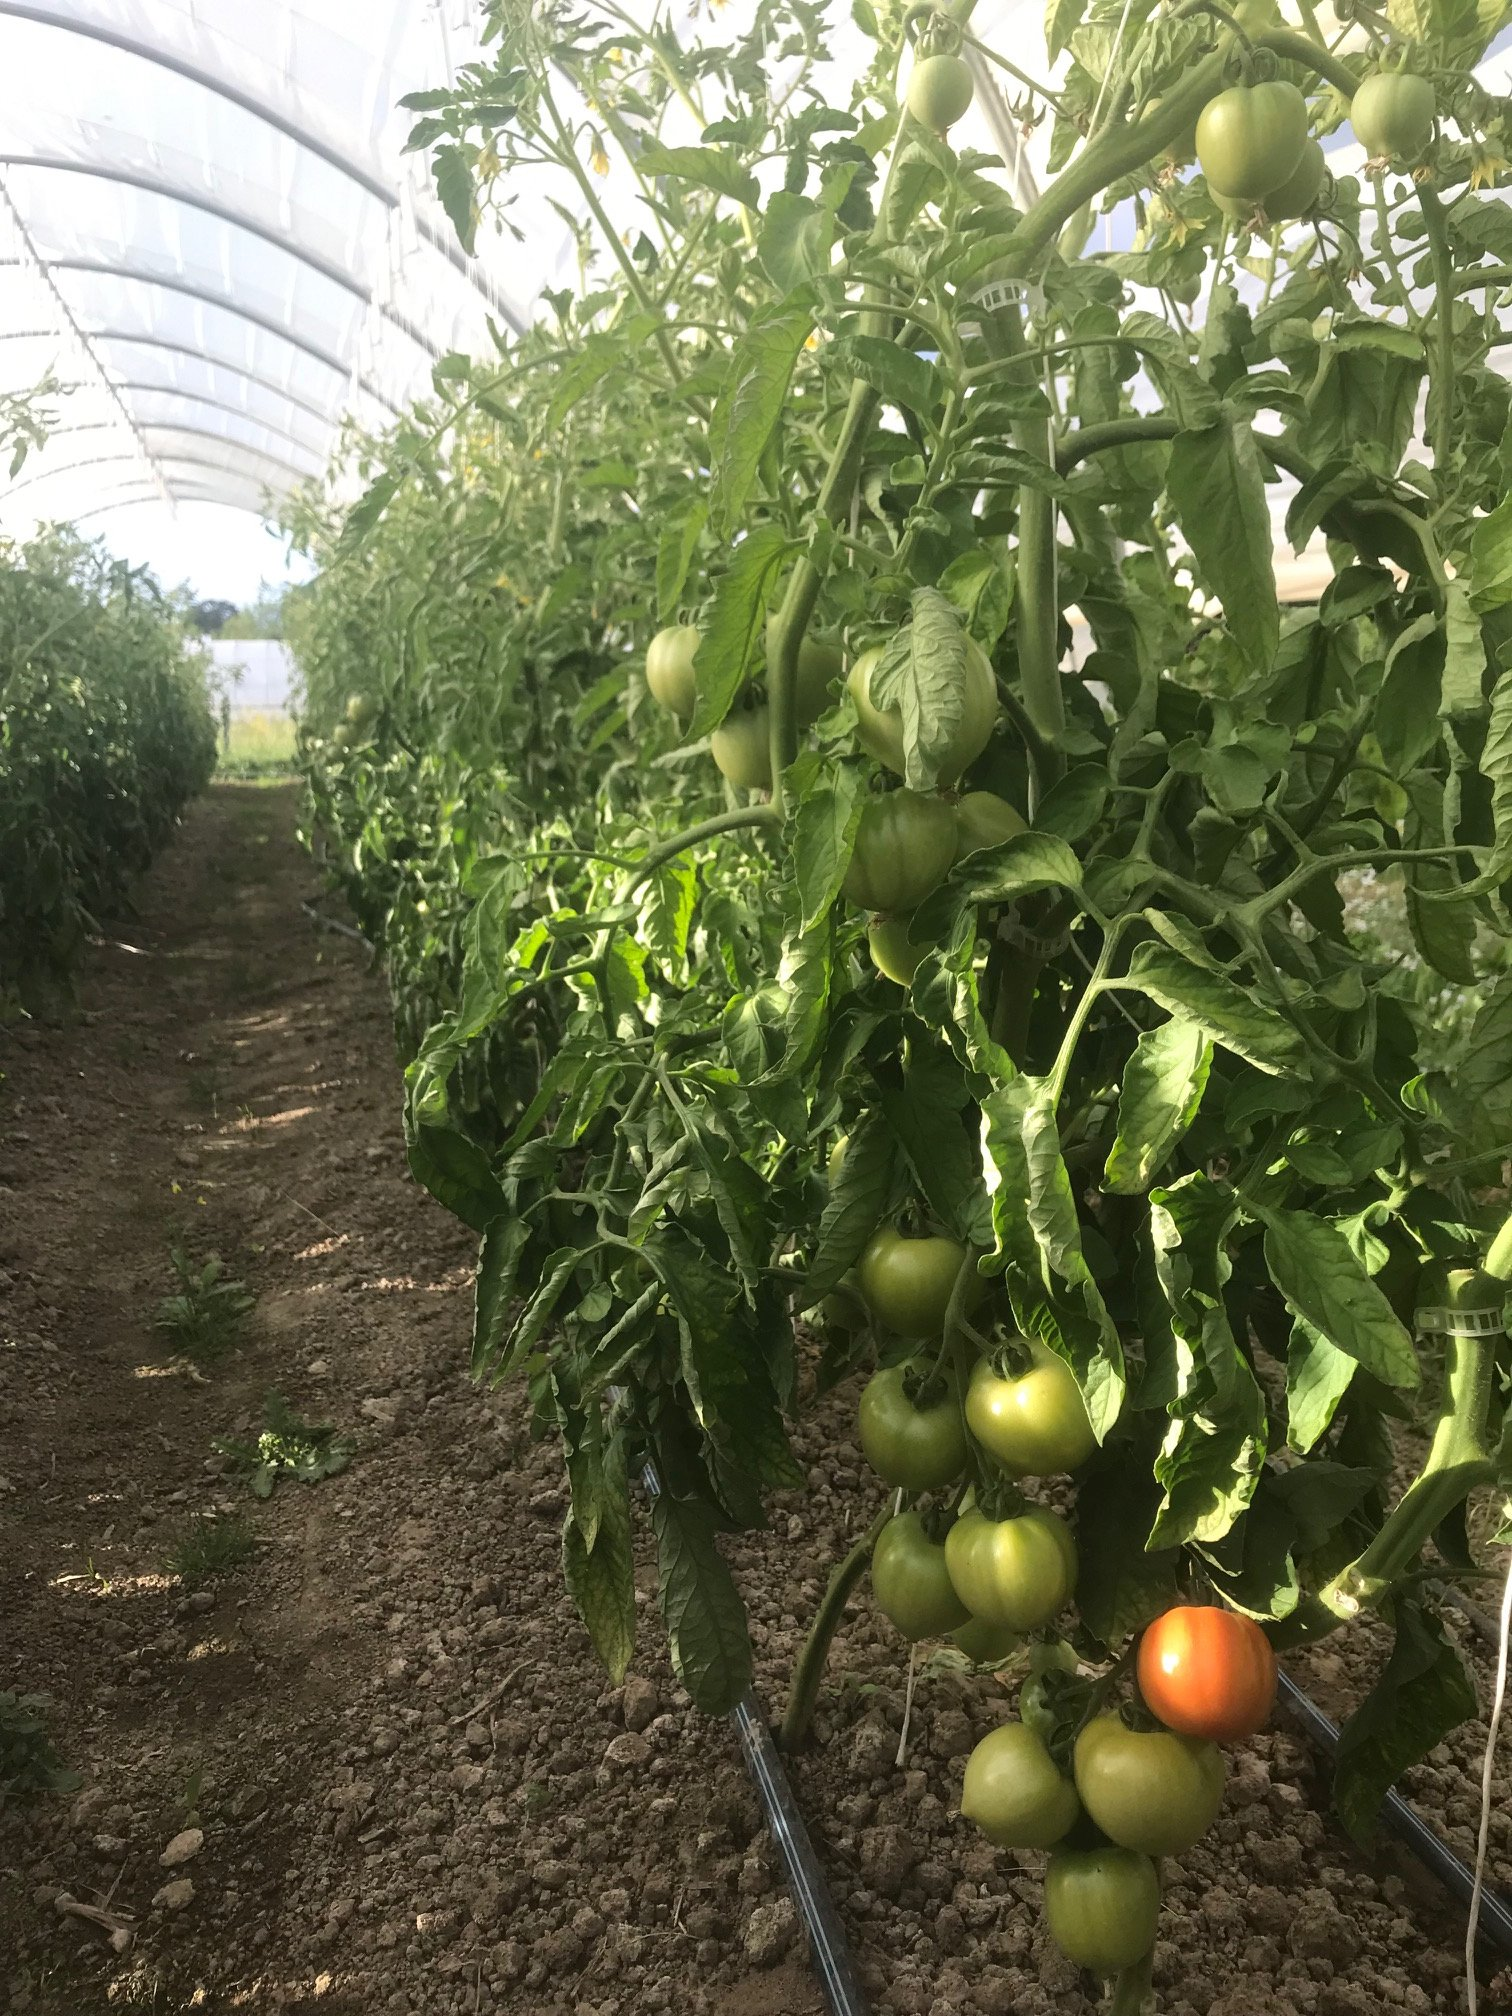 Farm Happenings for June 25, 2019